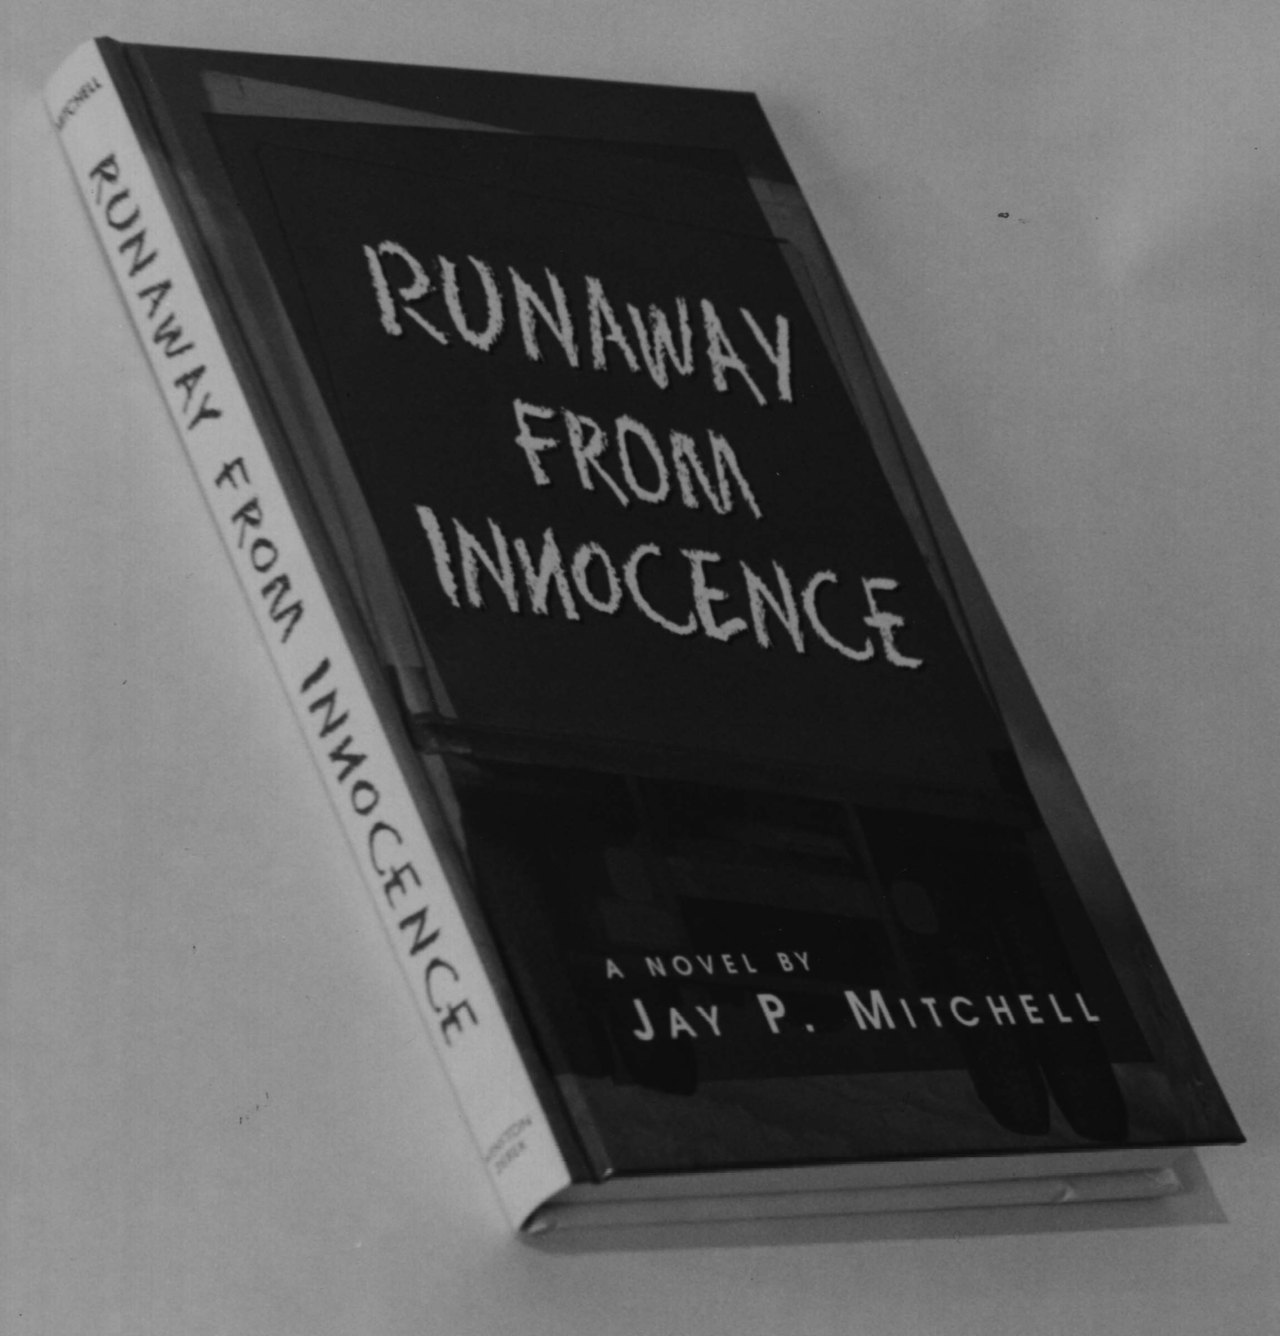 Runaway photo of book